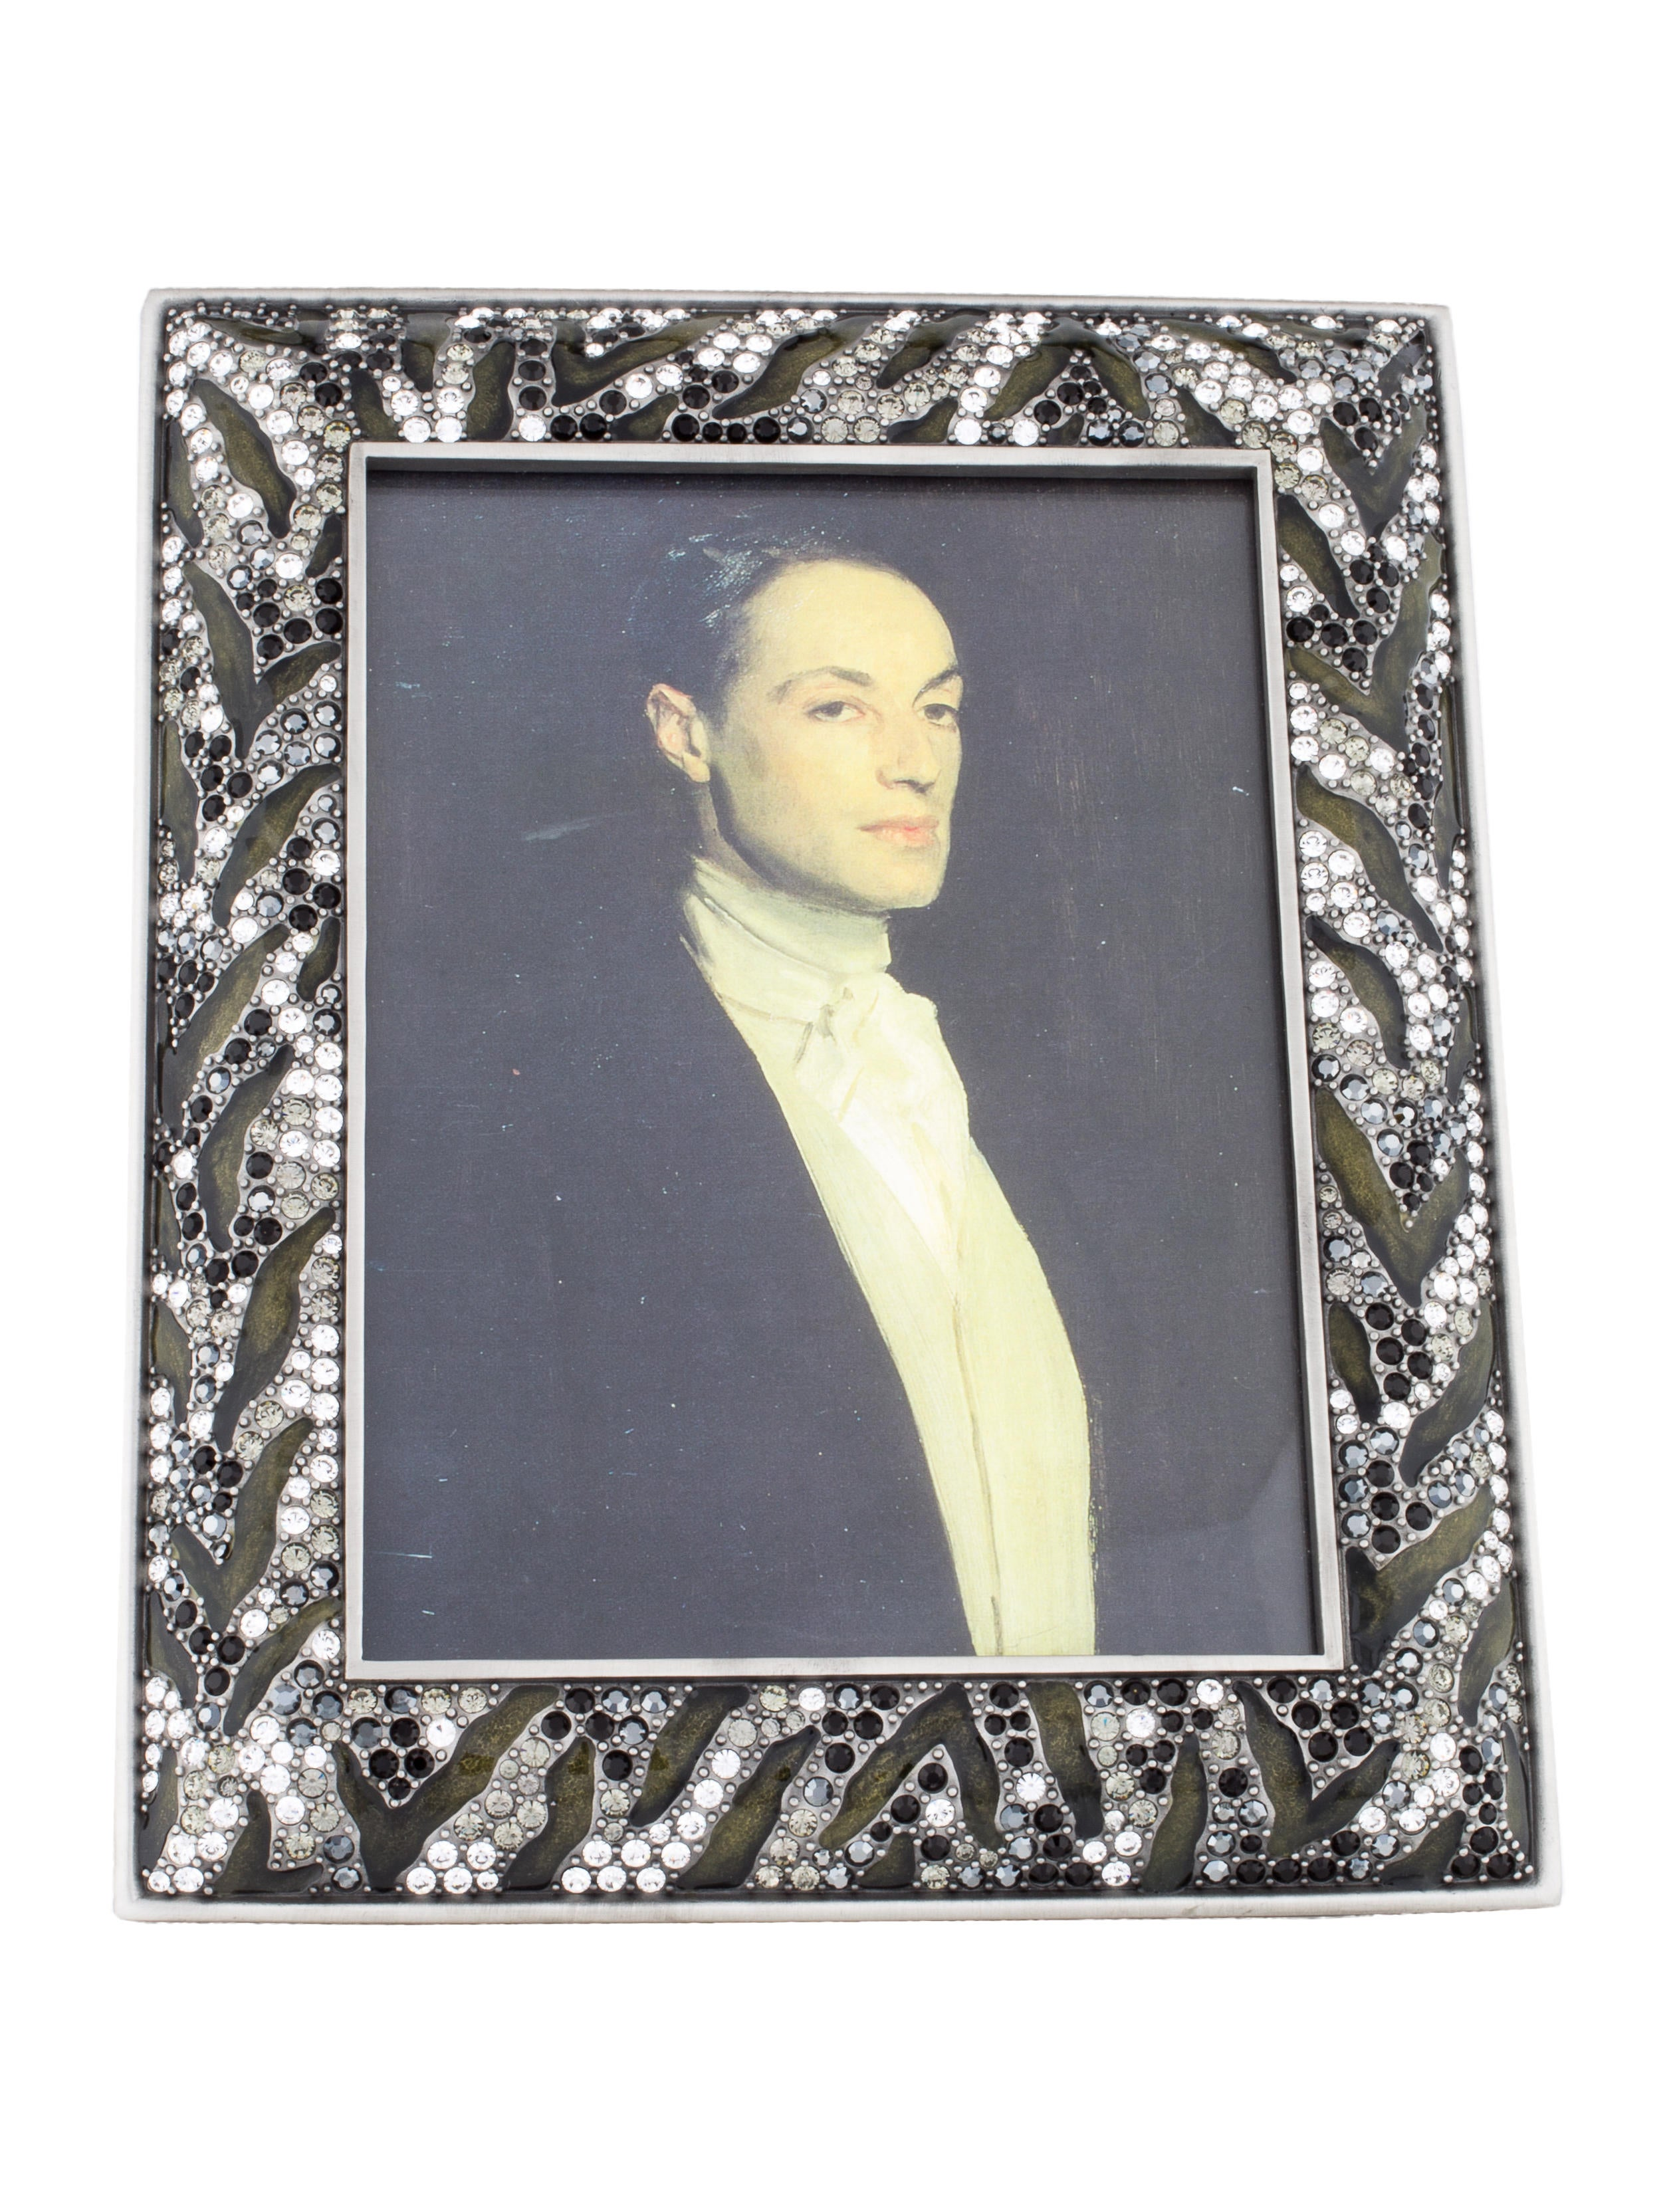 Jay strongwater embellished picture frame w tags decor for Embellished mirror frame